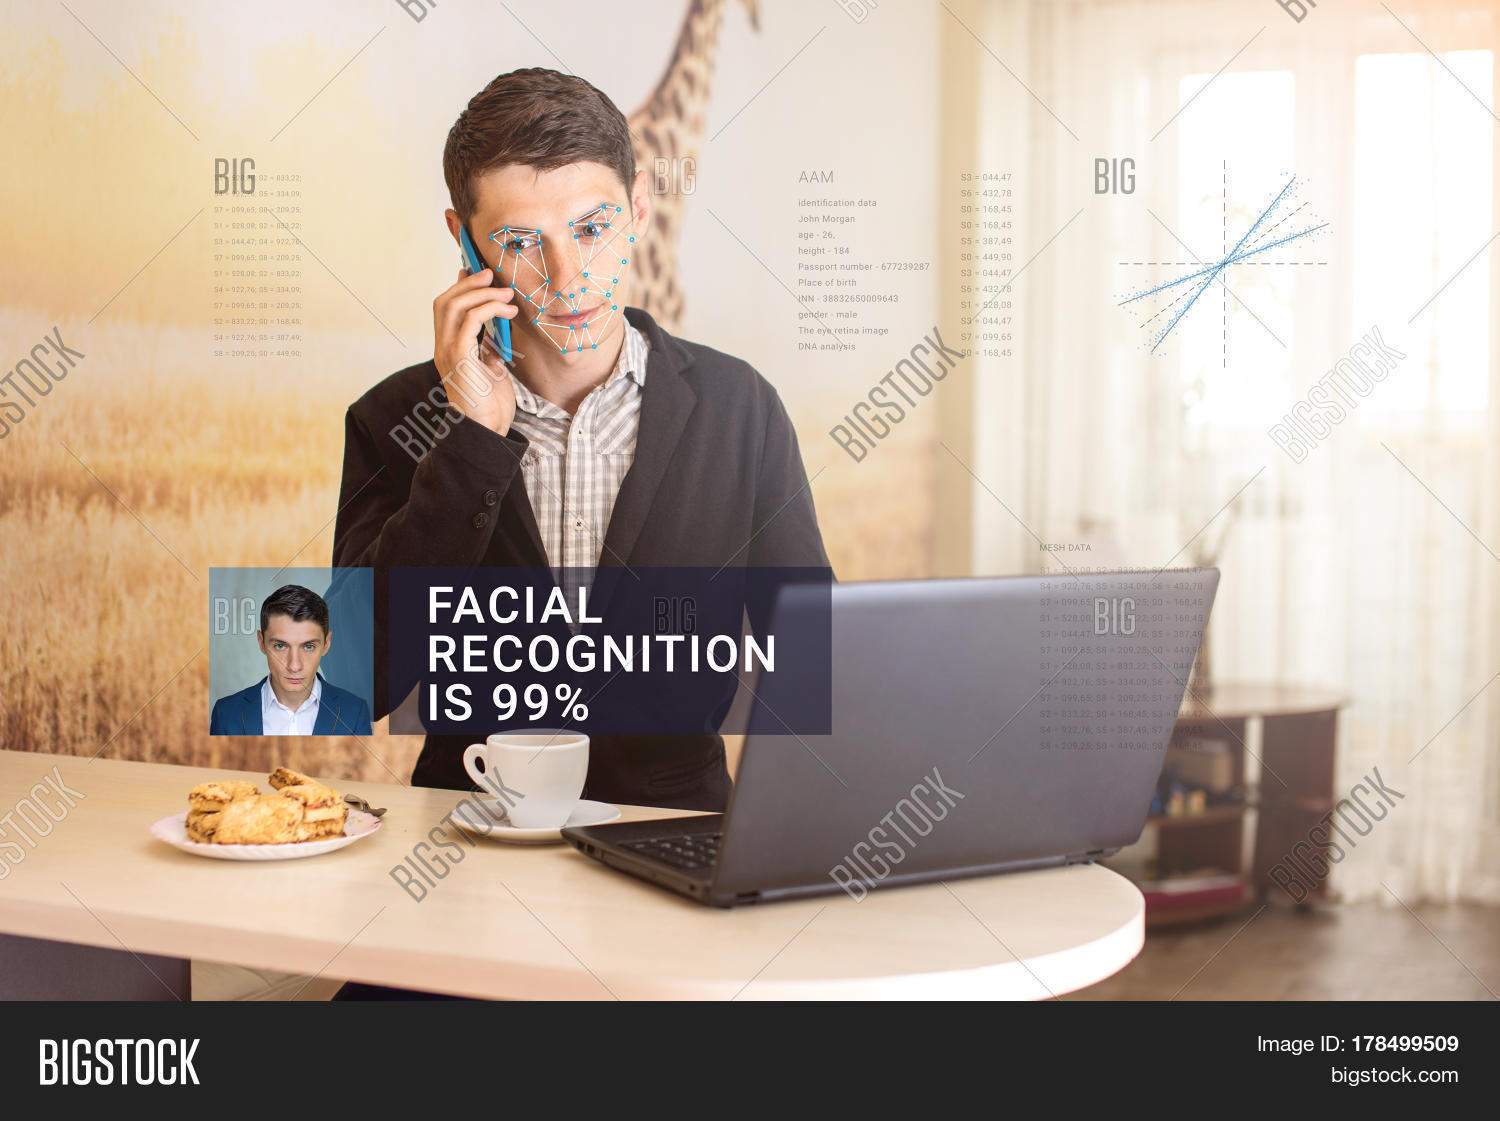 Recognition Male Face Image & Photo (Free Trial) | Bigstock